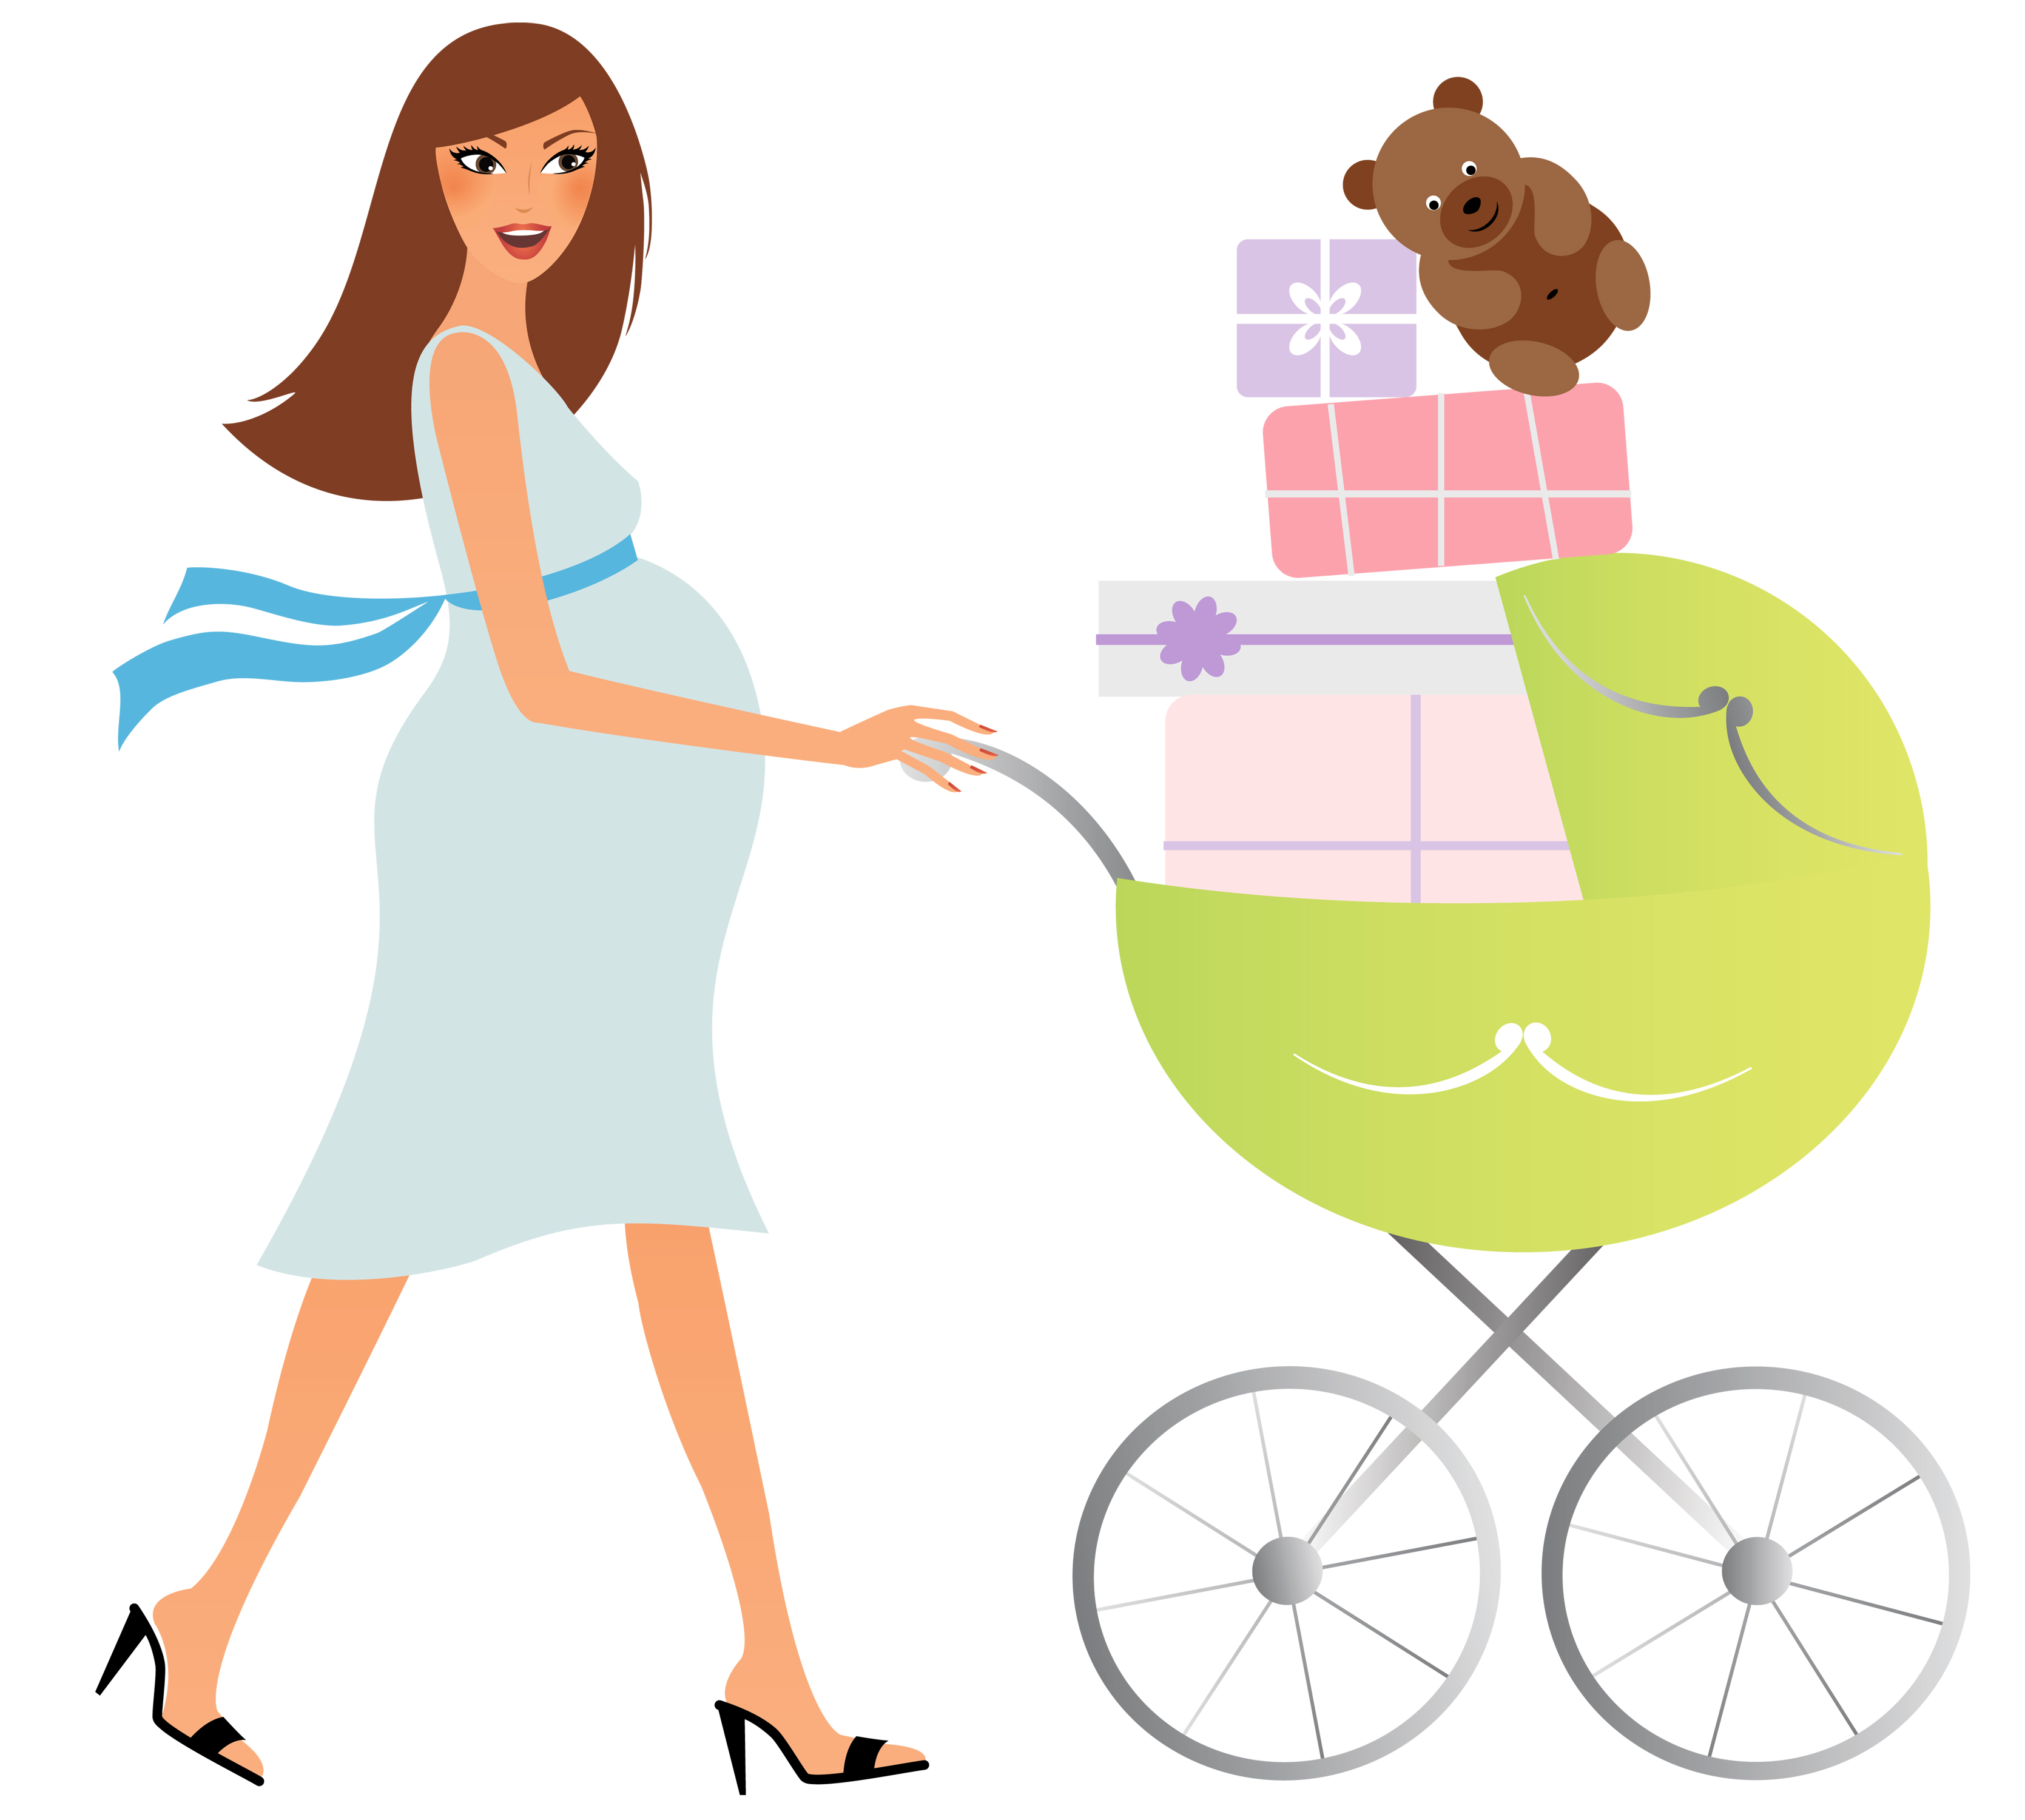 Pregnancy shopping checklist: Second trimester. Get more shopping information for your baby's first six weeks; Consult our list to see which baby clothing items and how many of each you'll need for your newborn's first weeks. Baby and mom gear for the first six weeks.